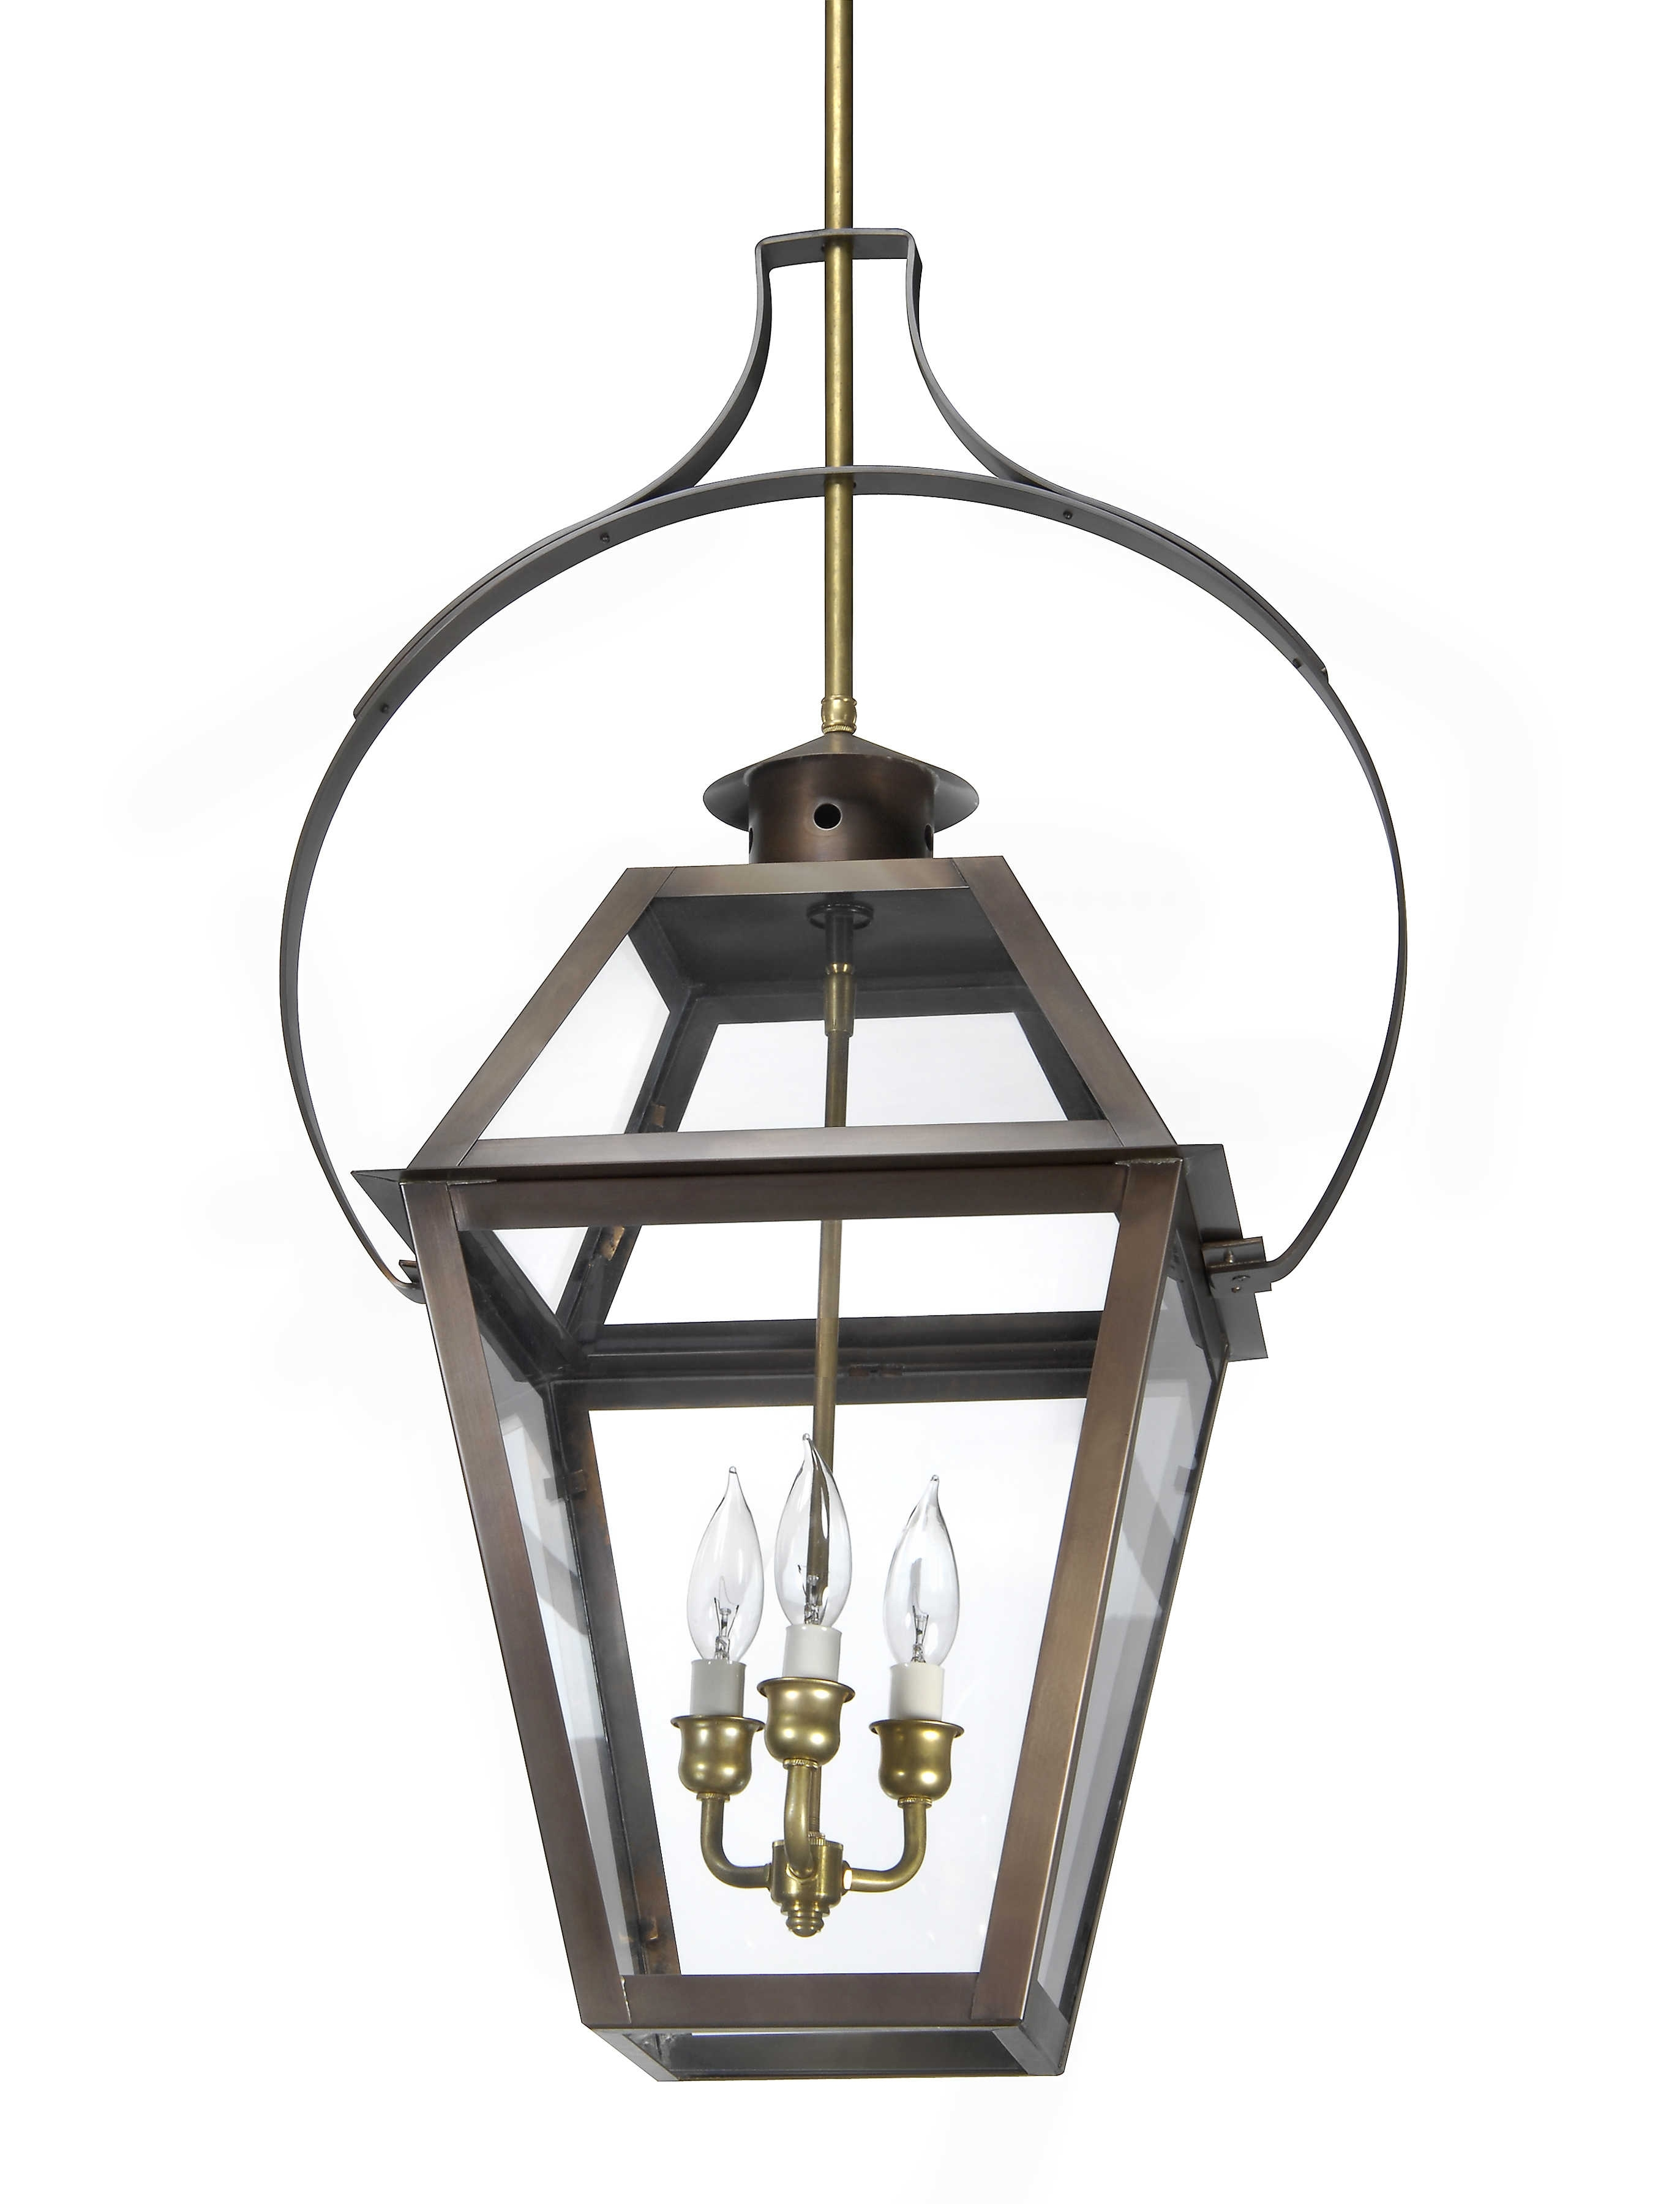 Ch 23 Hanging Yoke Light– Lantern & Scroll Intended For Well Liked Outdoor Electric Lanterns (View 4 of 20)